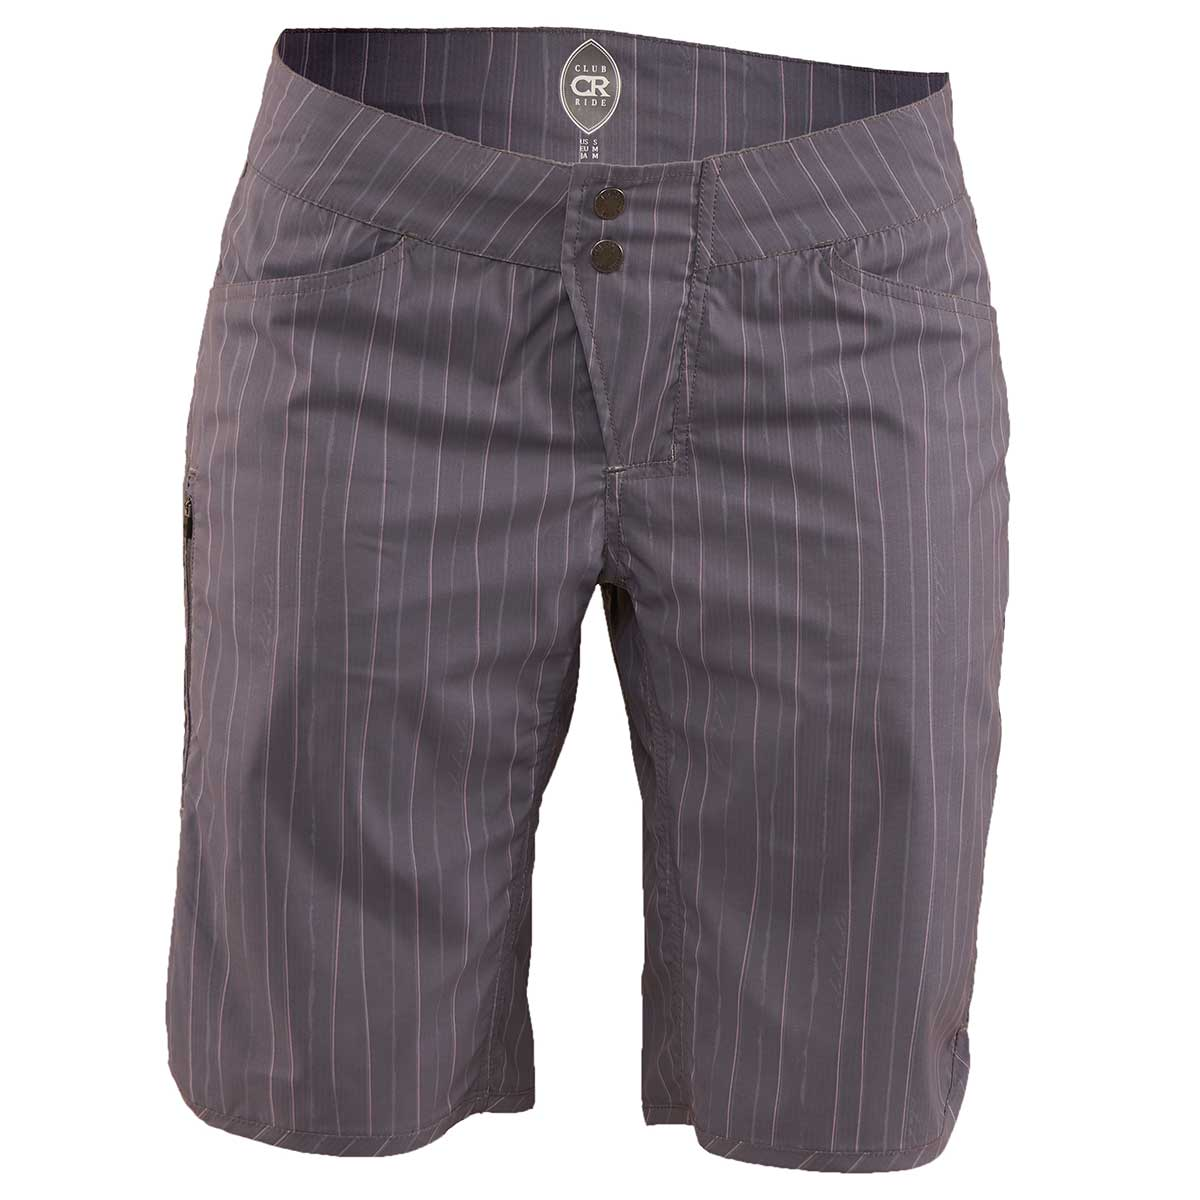 Club Ride women's Savvy Short in Artisan Grey Pinstripe